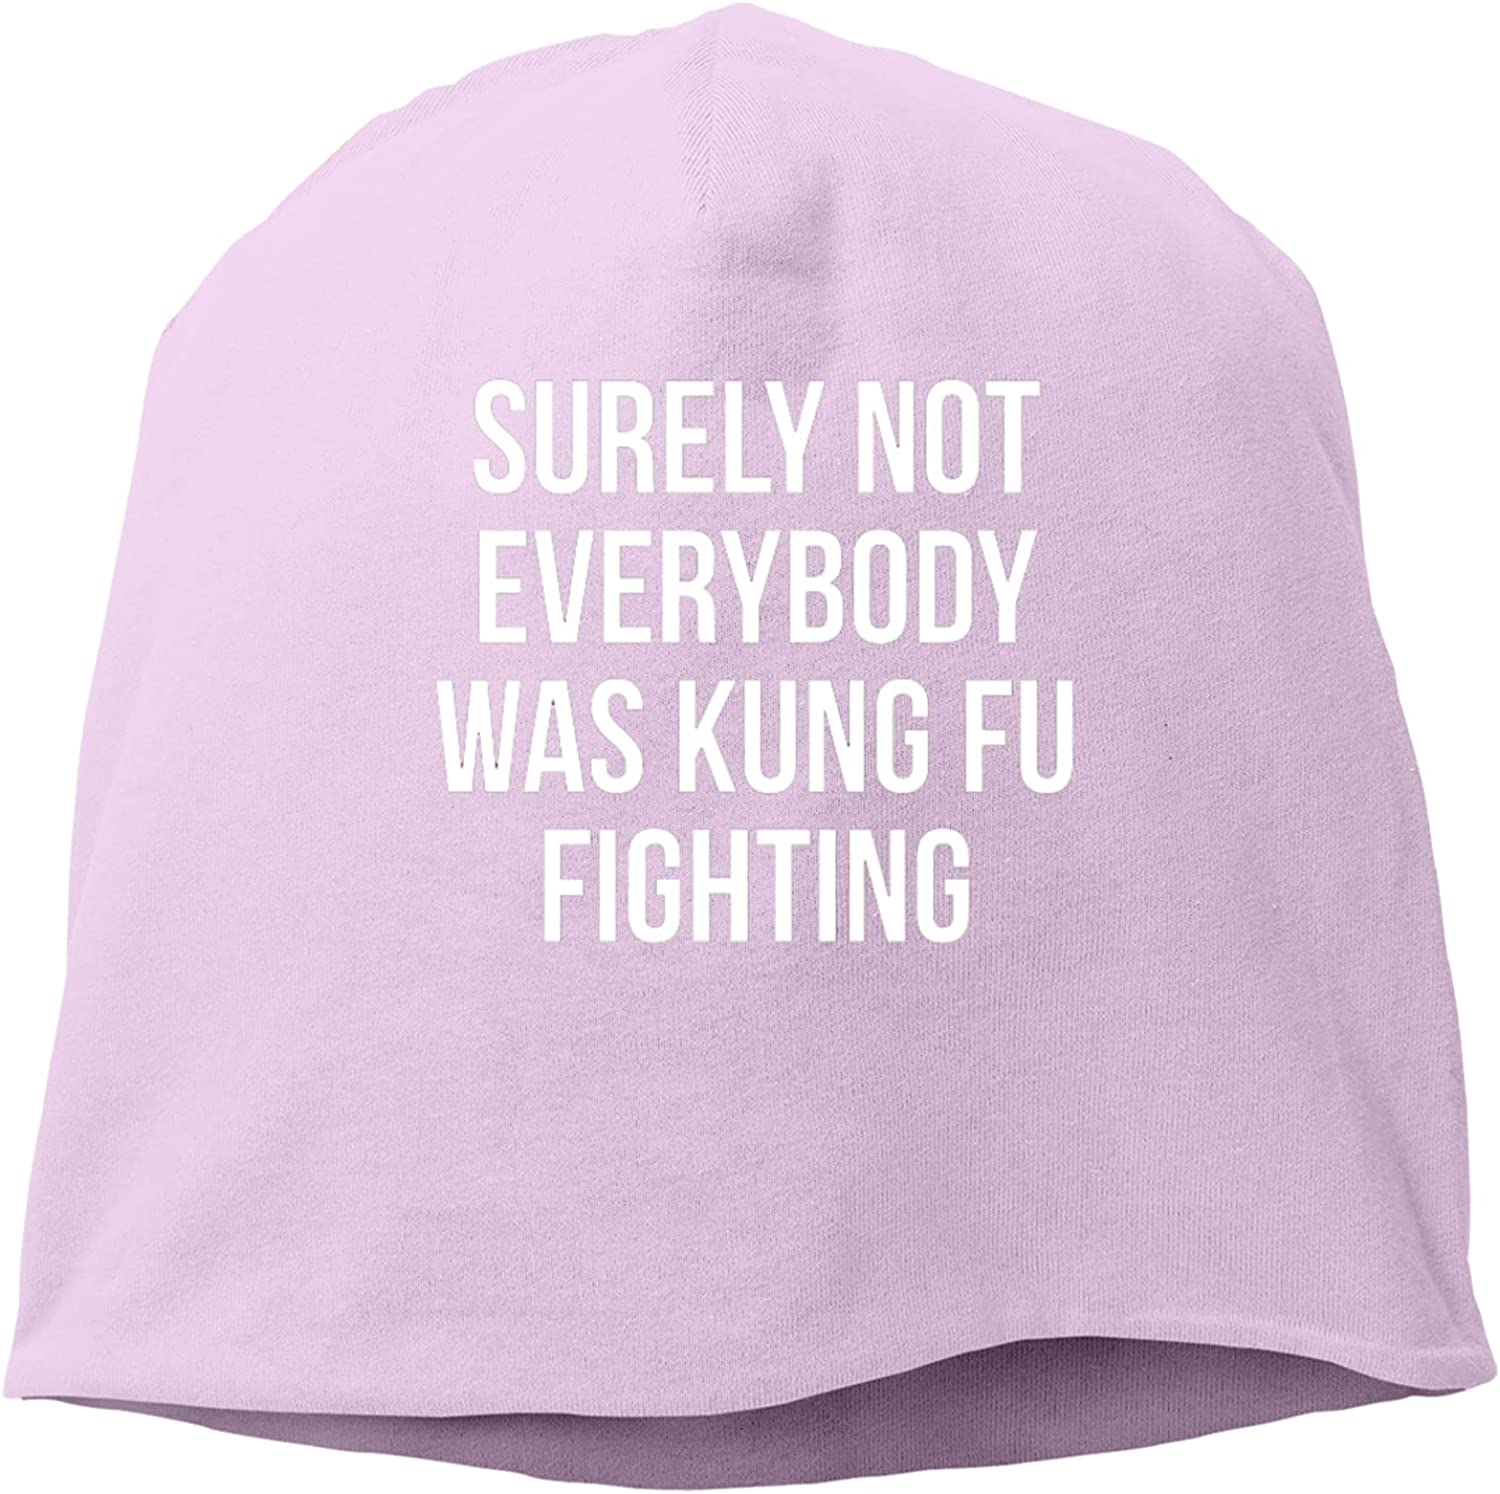 Surely Direct stock discount Not Everybody was Kung Hat,Unisex Fu Knit Fighting Spring new work one after another 1